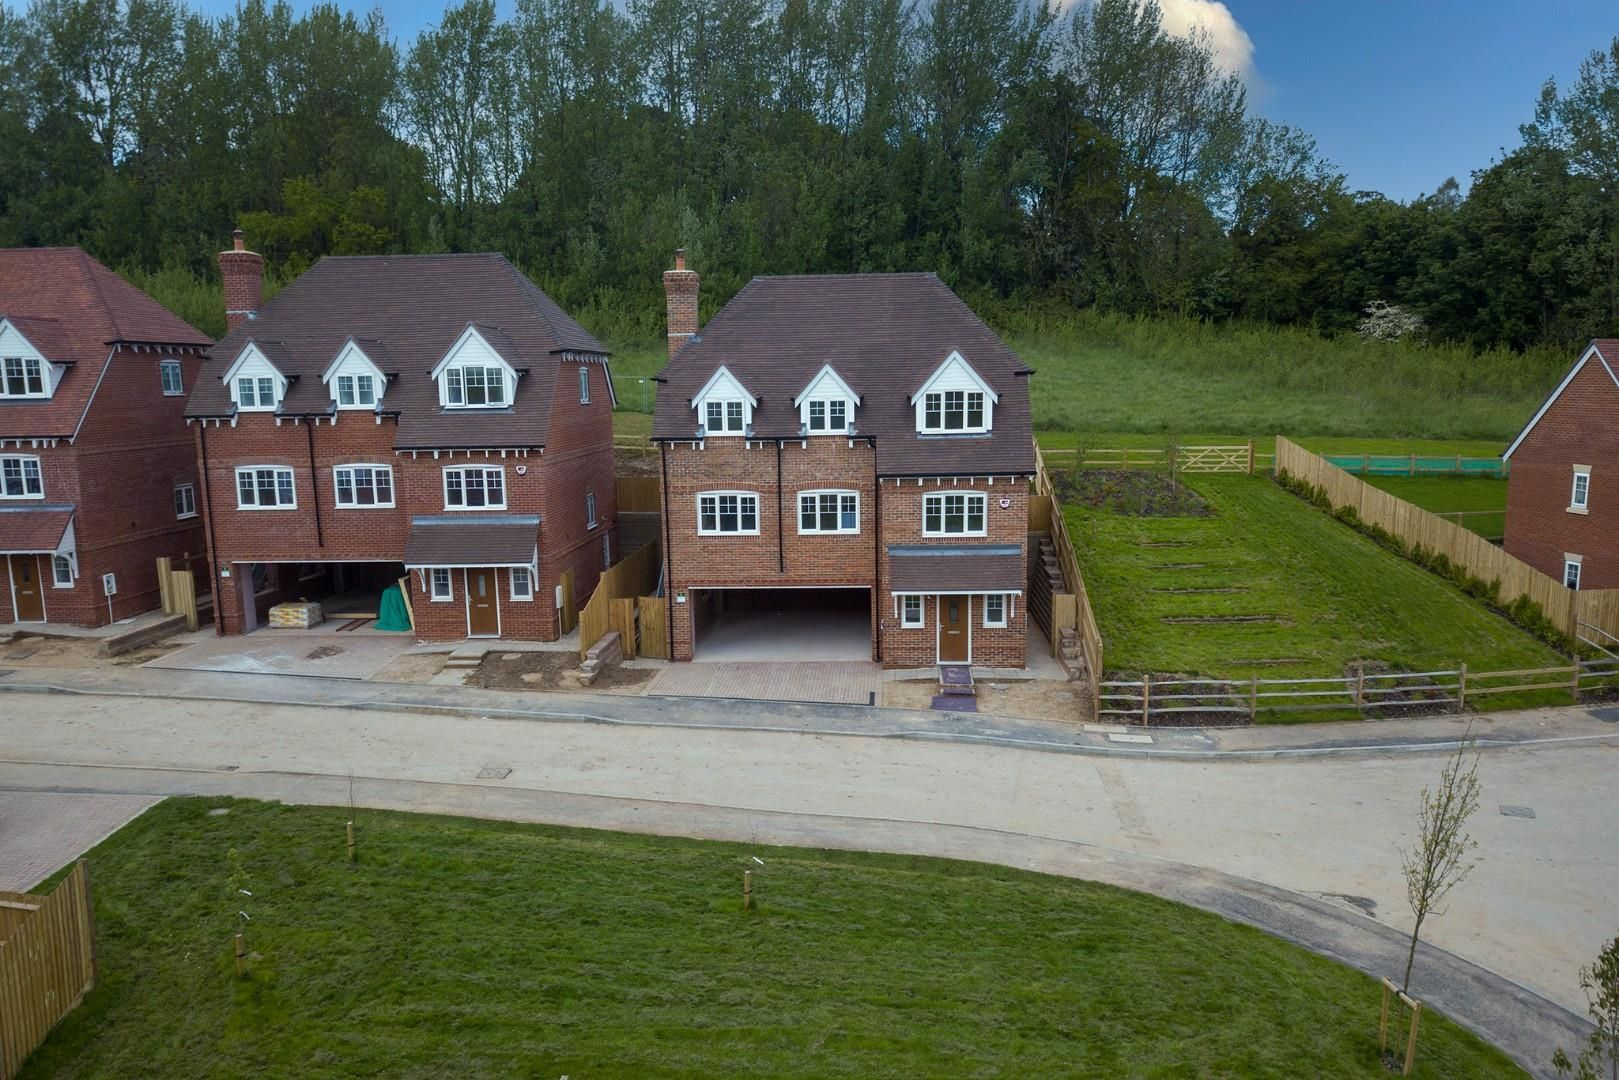 4 bed house for sale in Woolhampton - Property Image 1